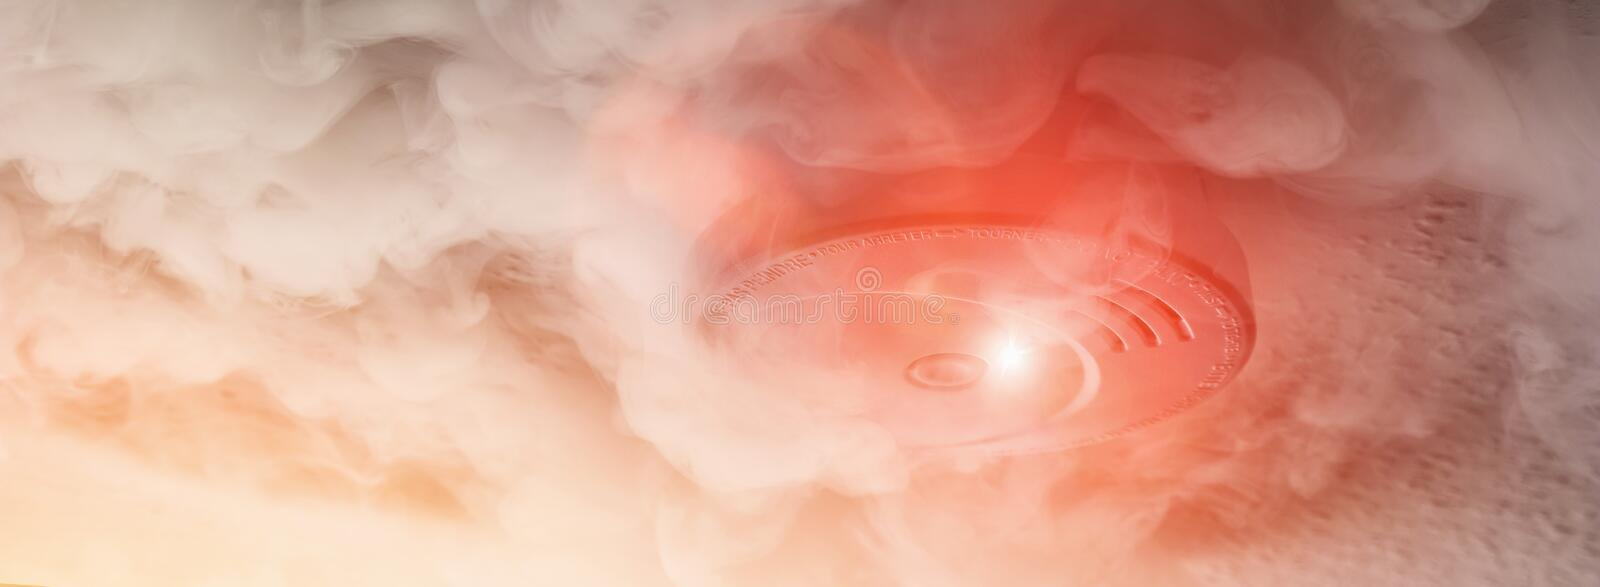 Smoke detector with smoke. A smokedetector detects smoke with a red warning light in a action on a roof. ideal for websites and magazines layouts stock photo